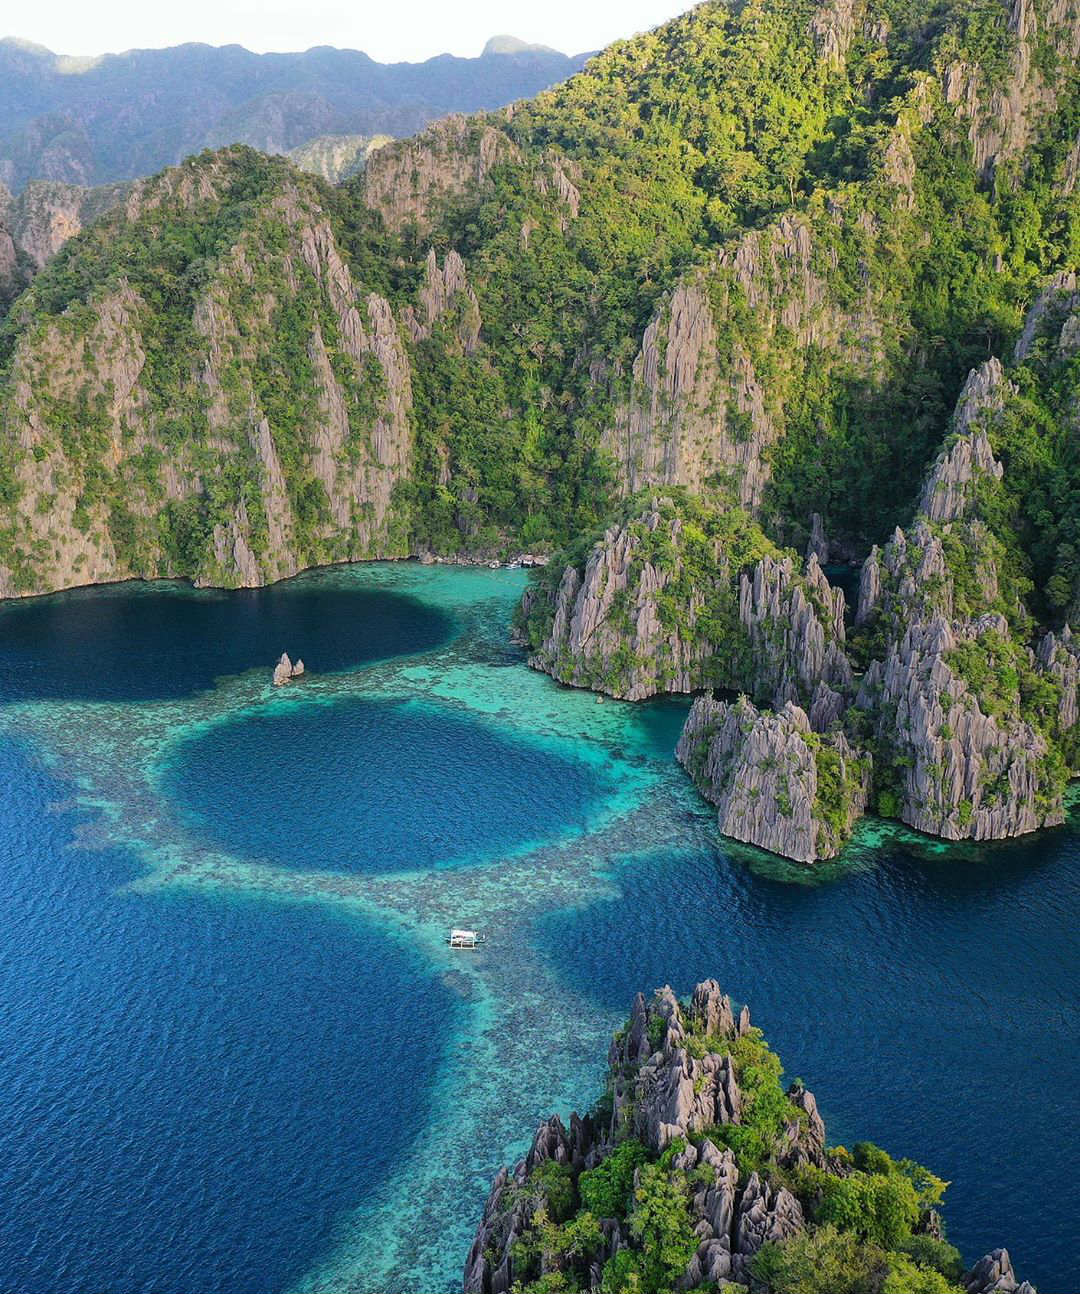 Things To Do in Palawan